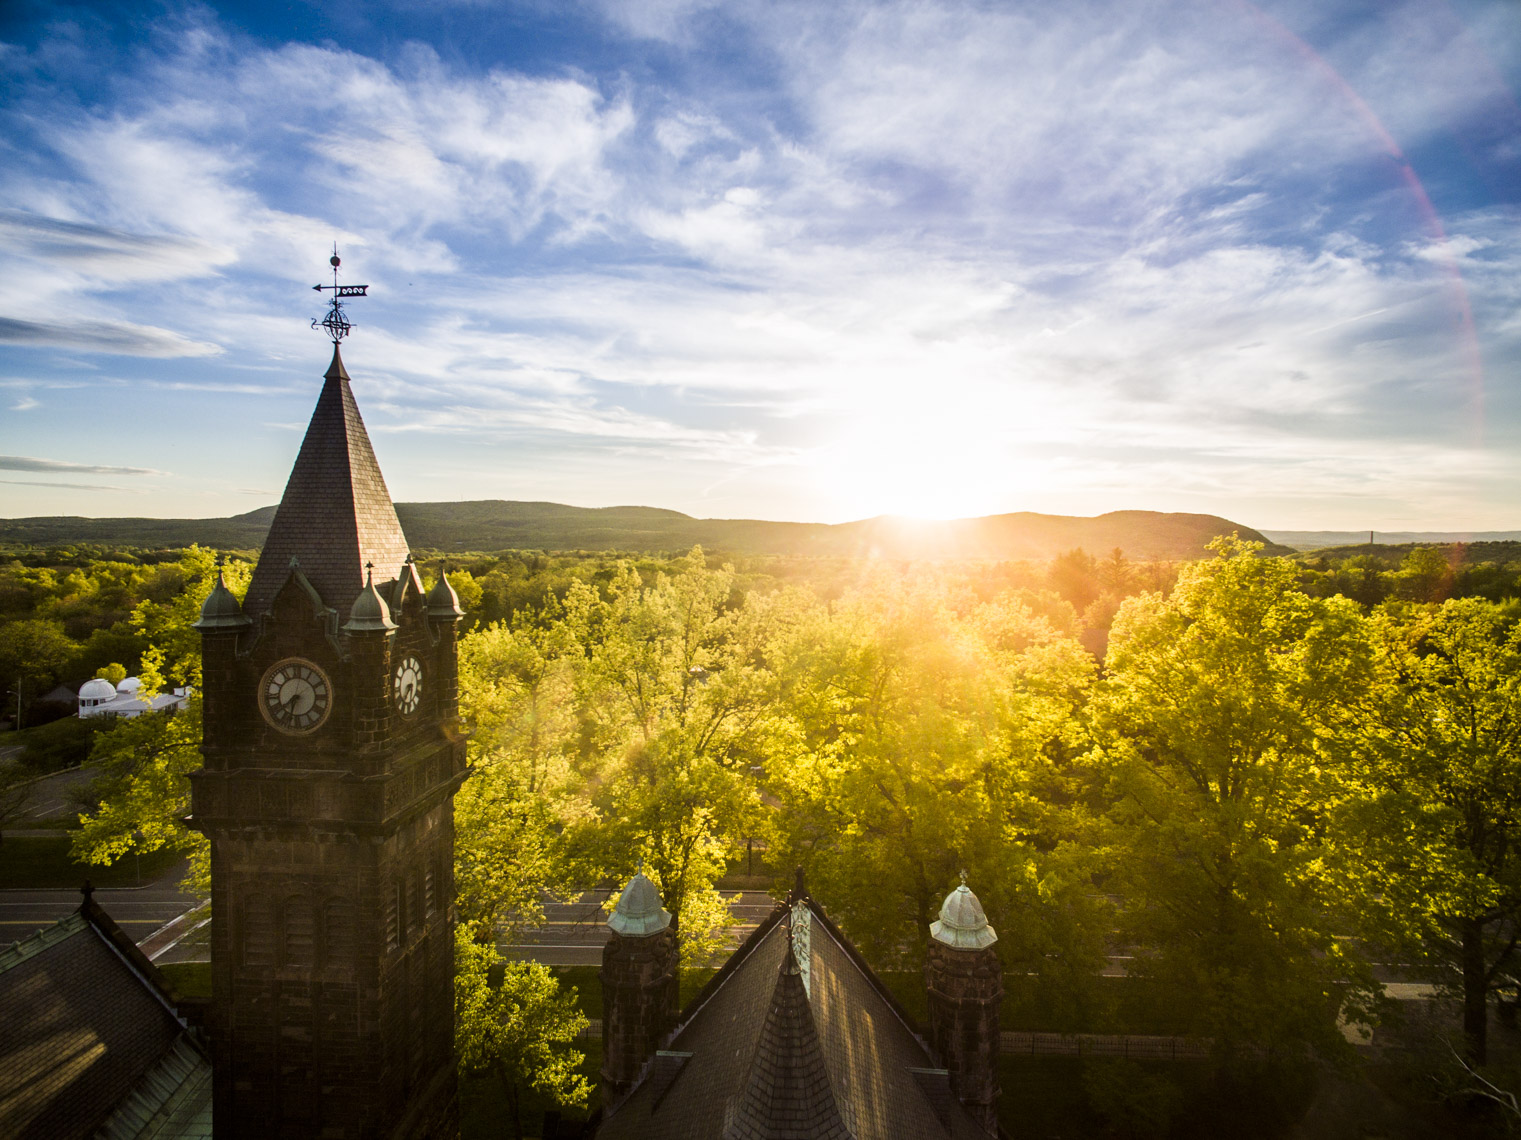 Sunset over the campus of Mount Holyoke College in Massachusetts